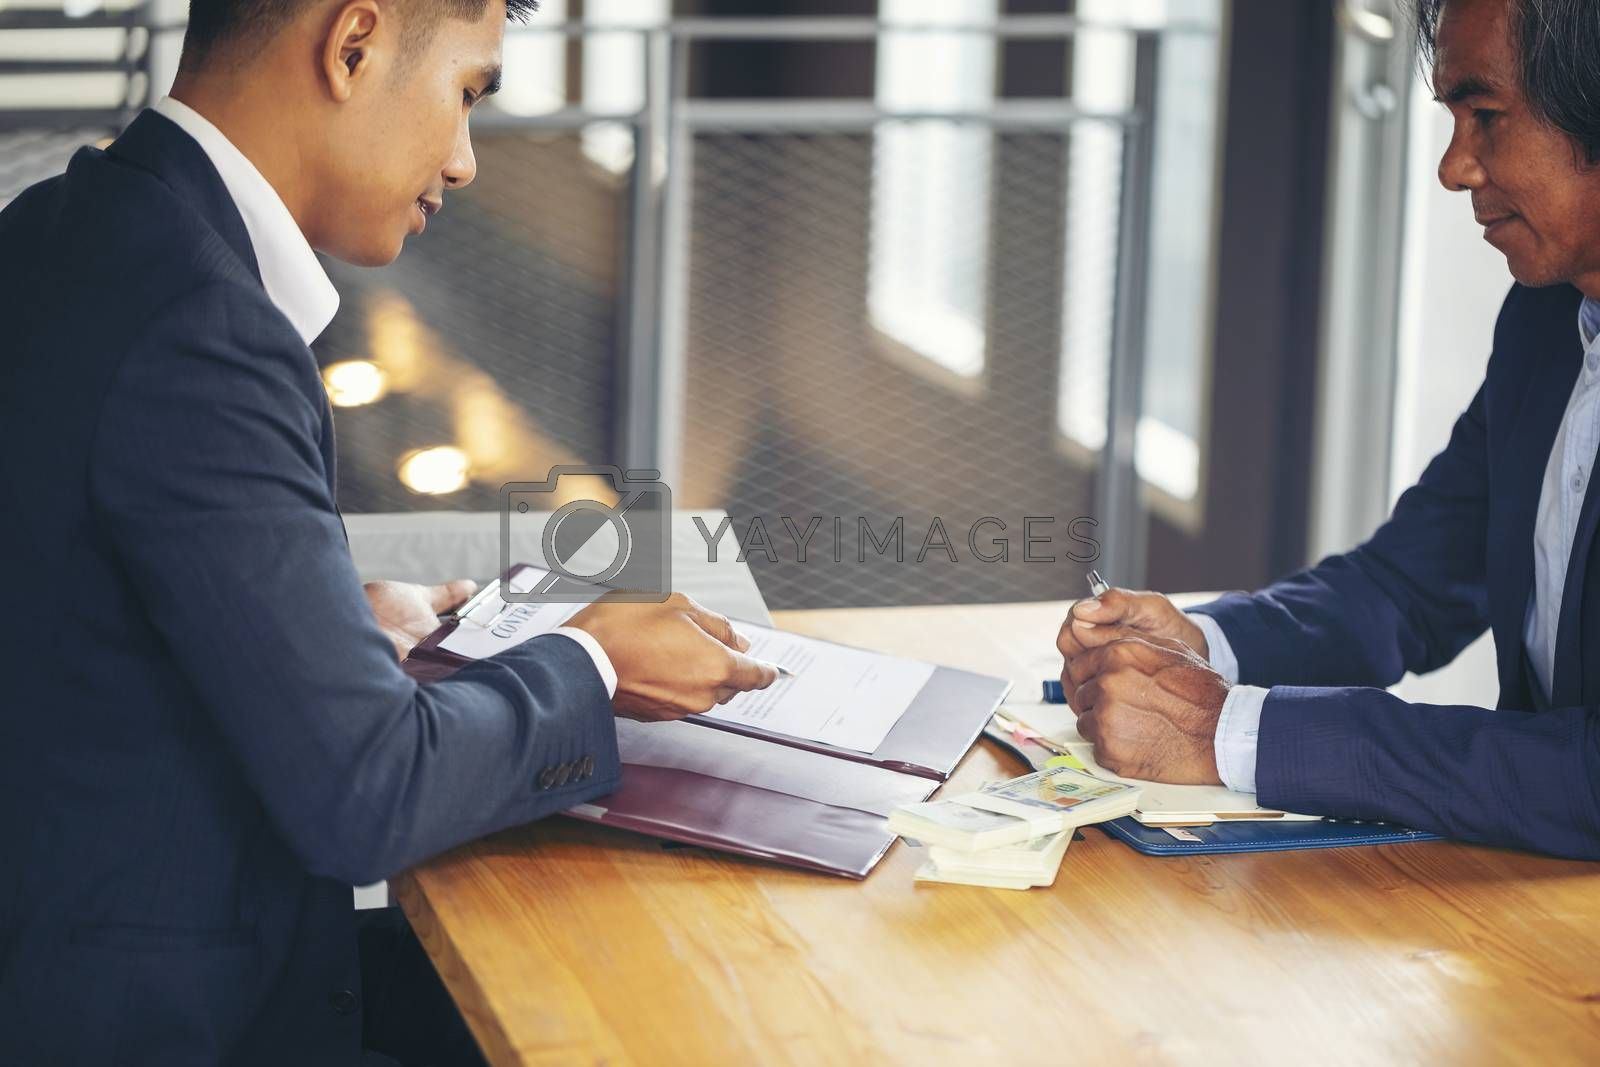 Image of business people hands working with papers at meeting. B by numberone9018